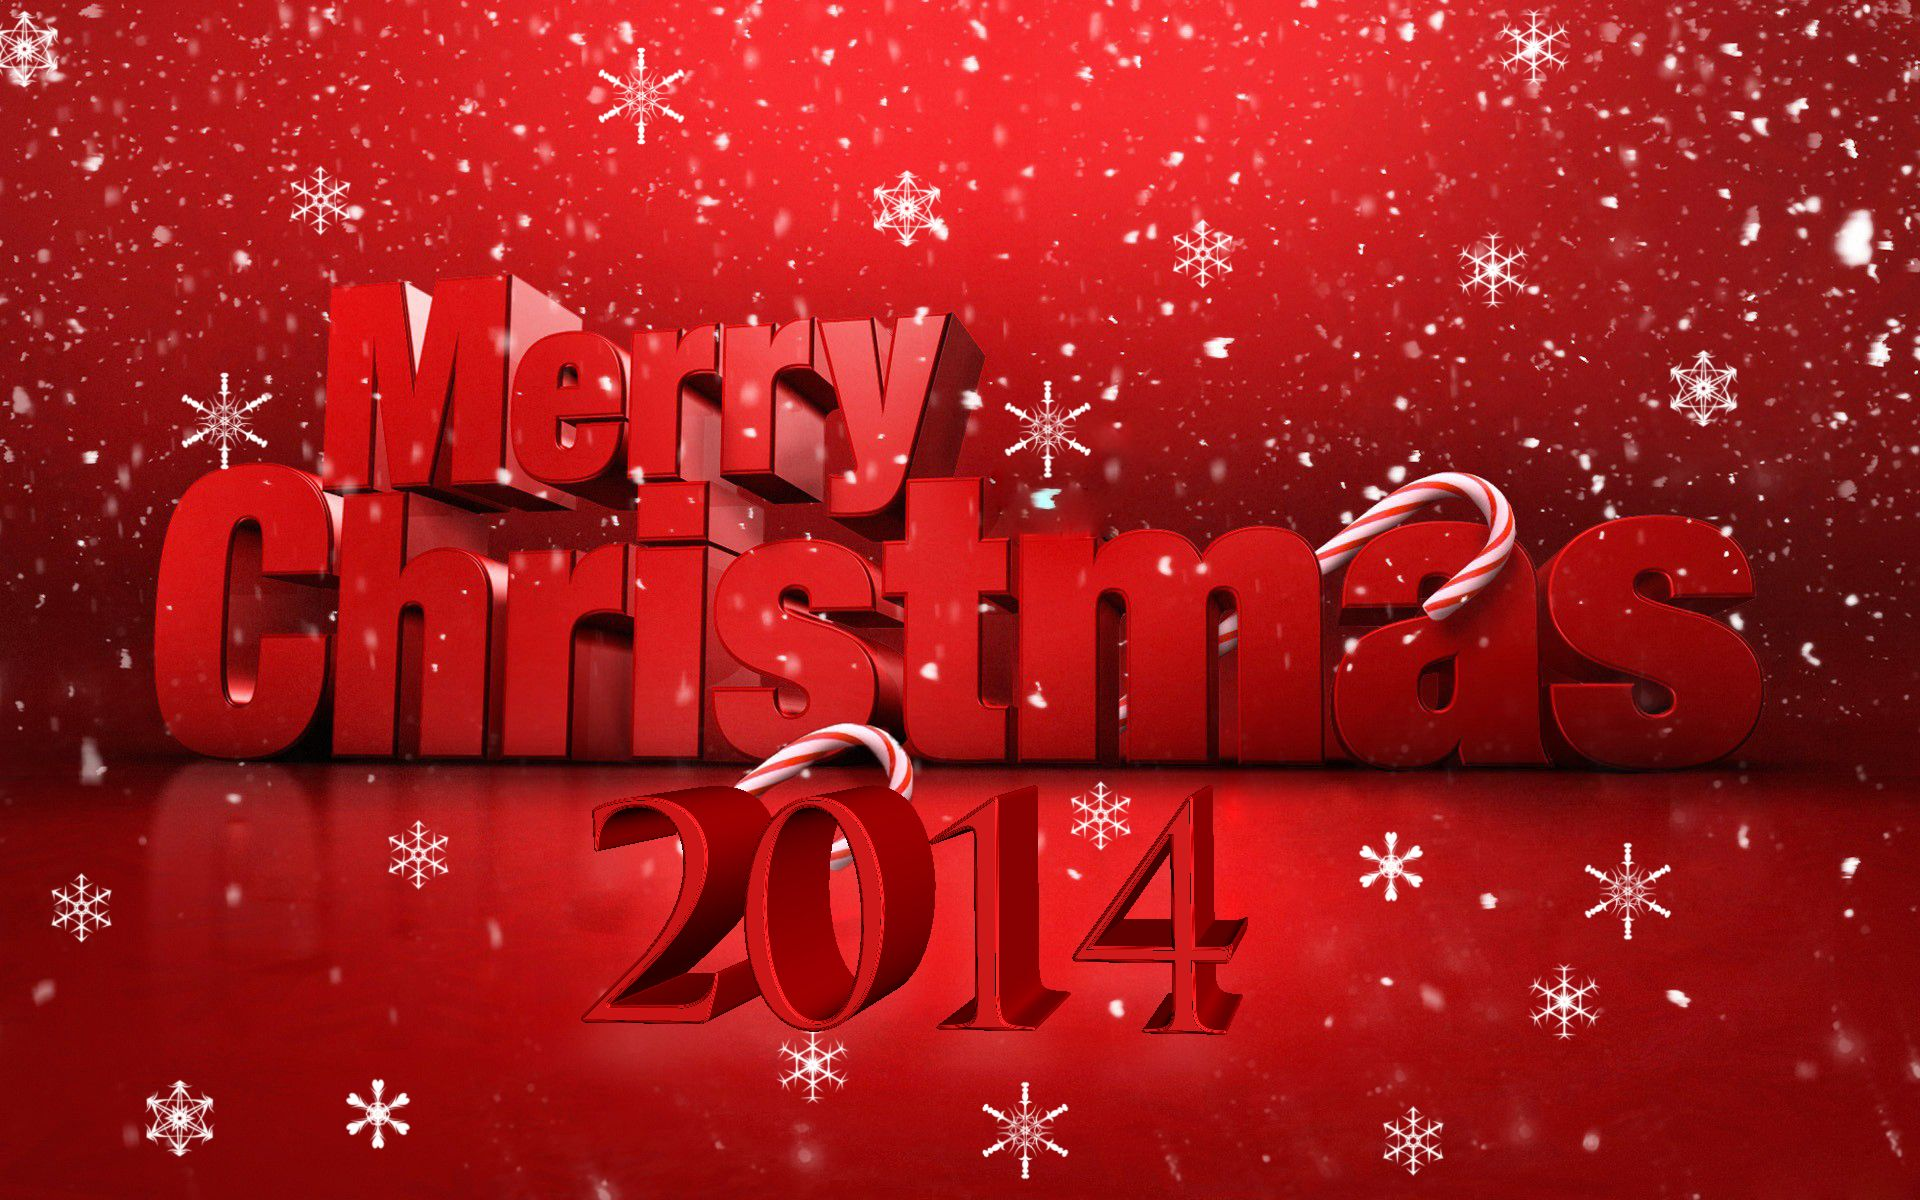 merry Christmas 2013 wishes in english, cheistmas sms in english ...